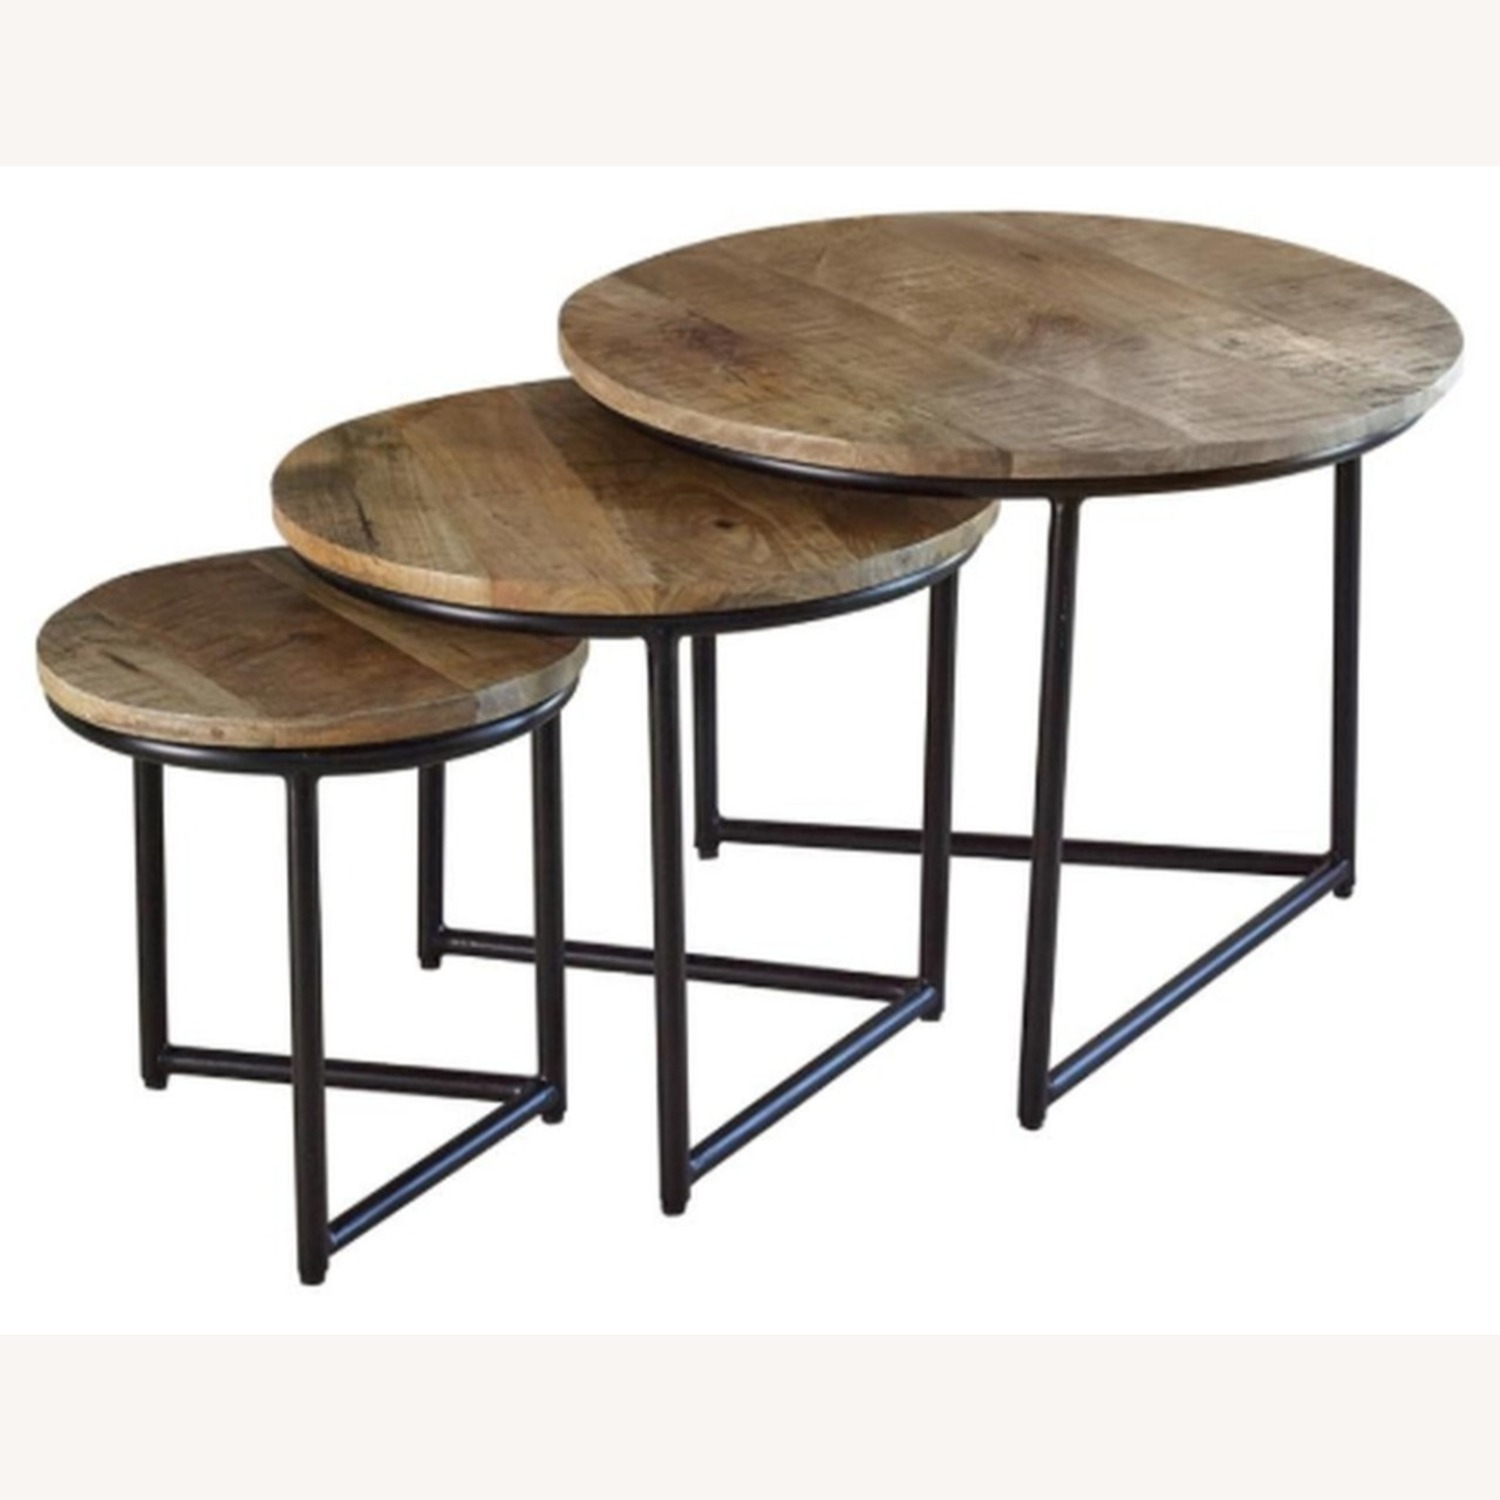 3-Piece Nesting Table In Natural Sheesham Grey - image-1